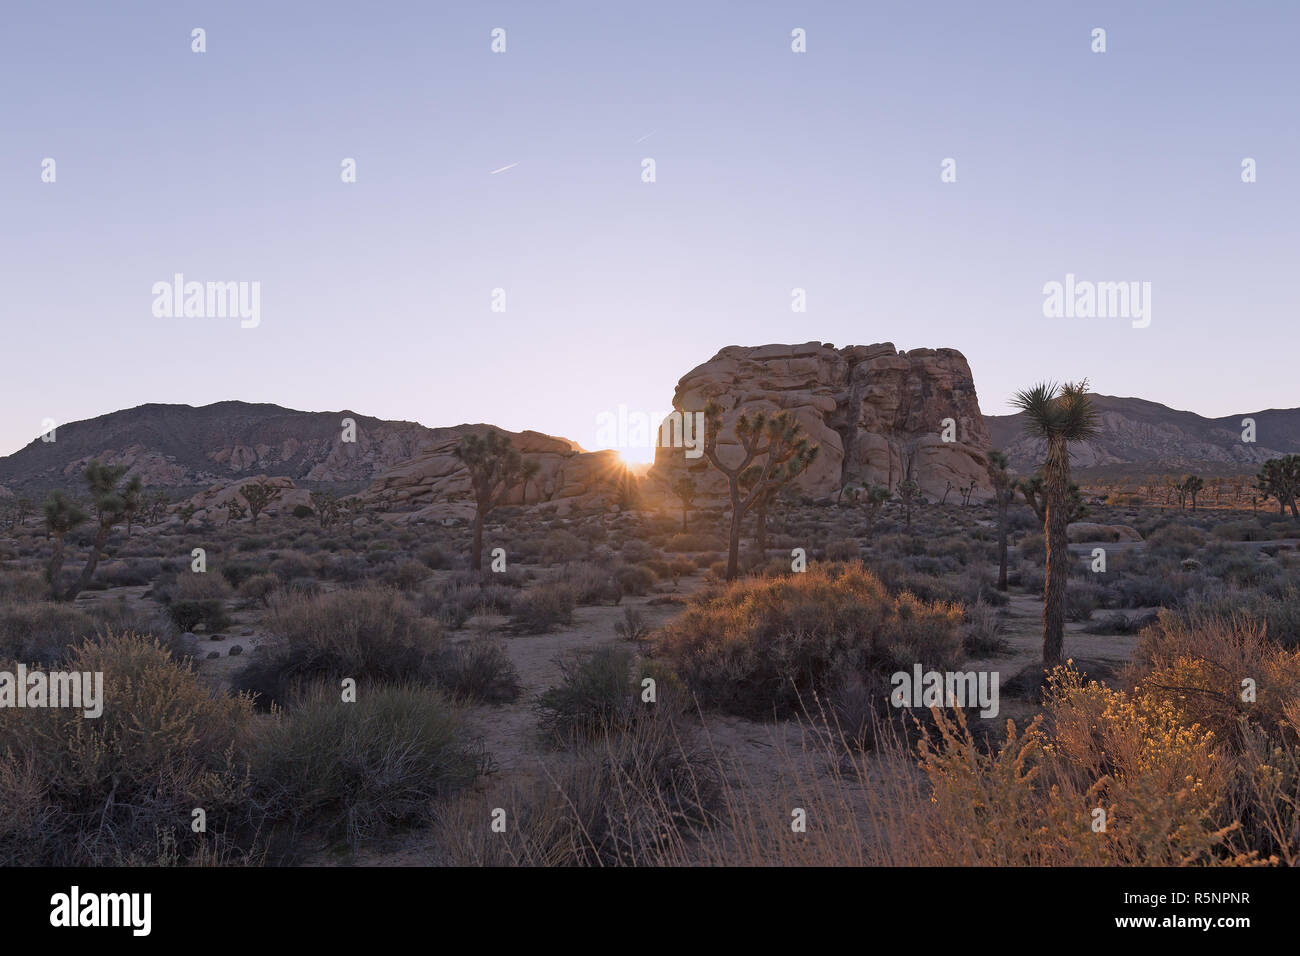 Sunrise in Joshua Tree National Park, California USA. High desert with stark rock formations and sparse vegetation under morning sunrays. - Stock Image